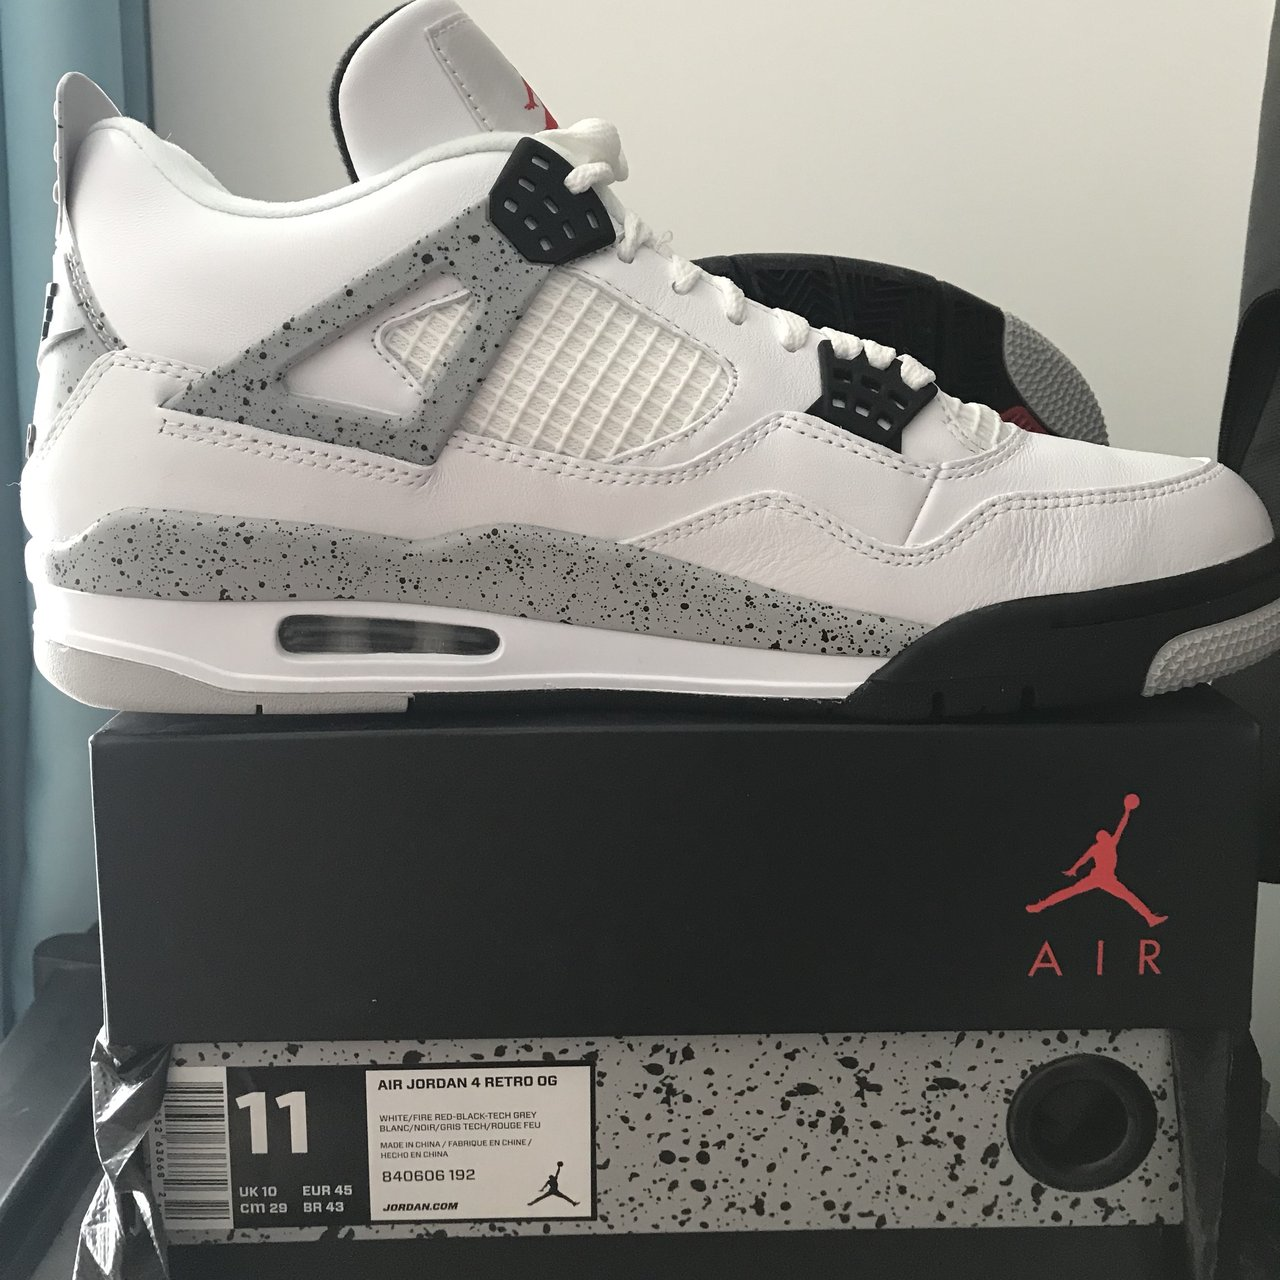 42cd696a0ae138 Air Jordan 4 Retro OG White Cement Unworn DS Condition   to - Depop